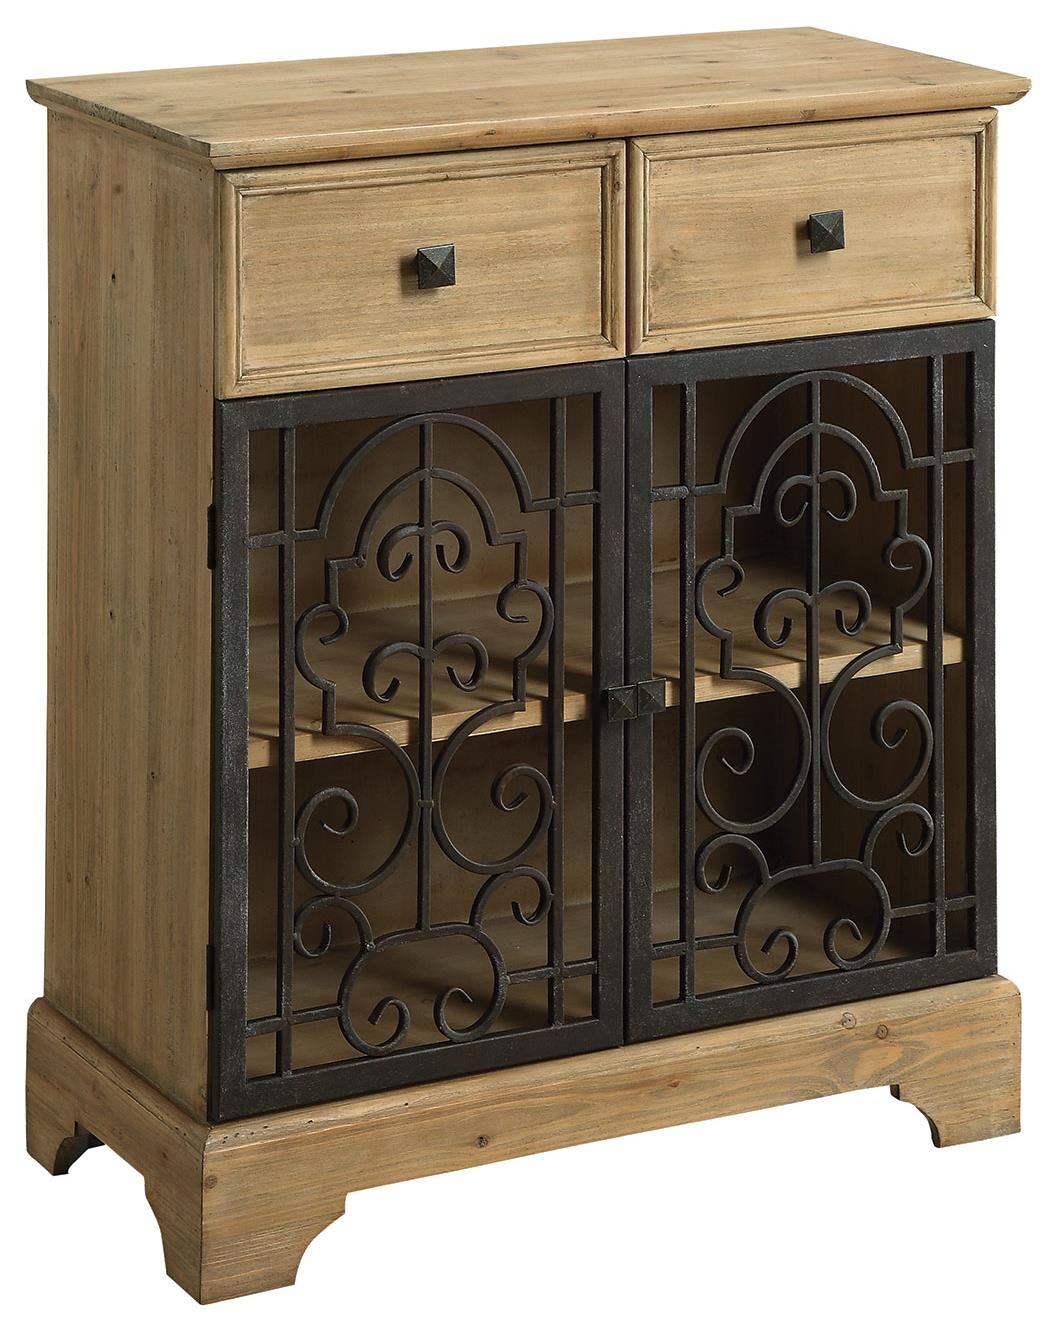 Coaster Accent Cabinets Accent Cabinet - Item Number: 950547